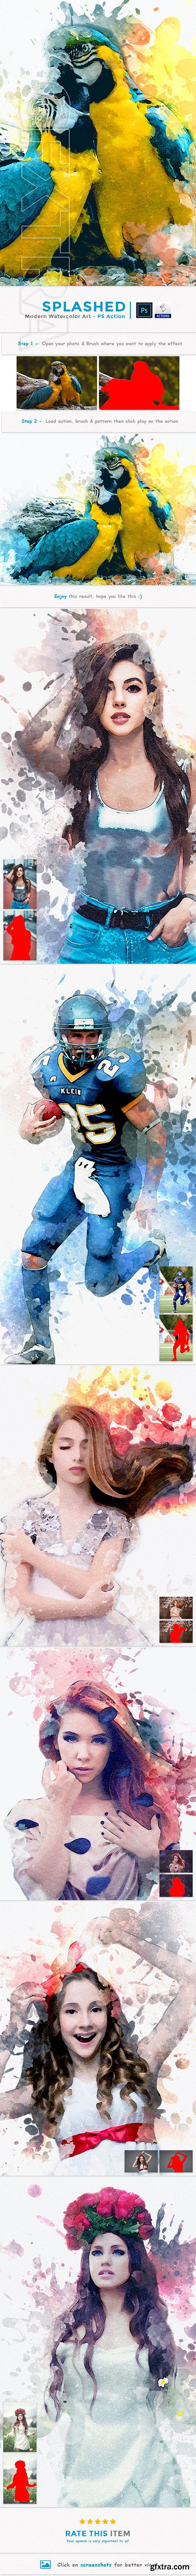 GraphicRiver - Splashed - Modern Watercolor Art PS Action 23961517